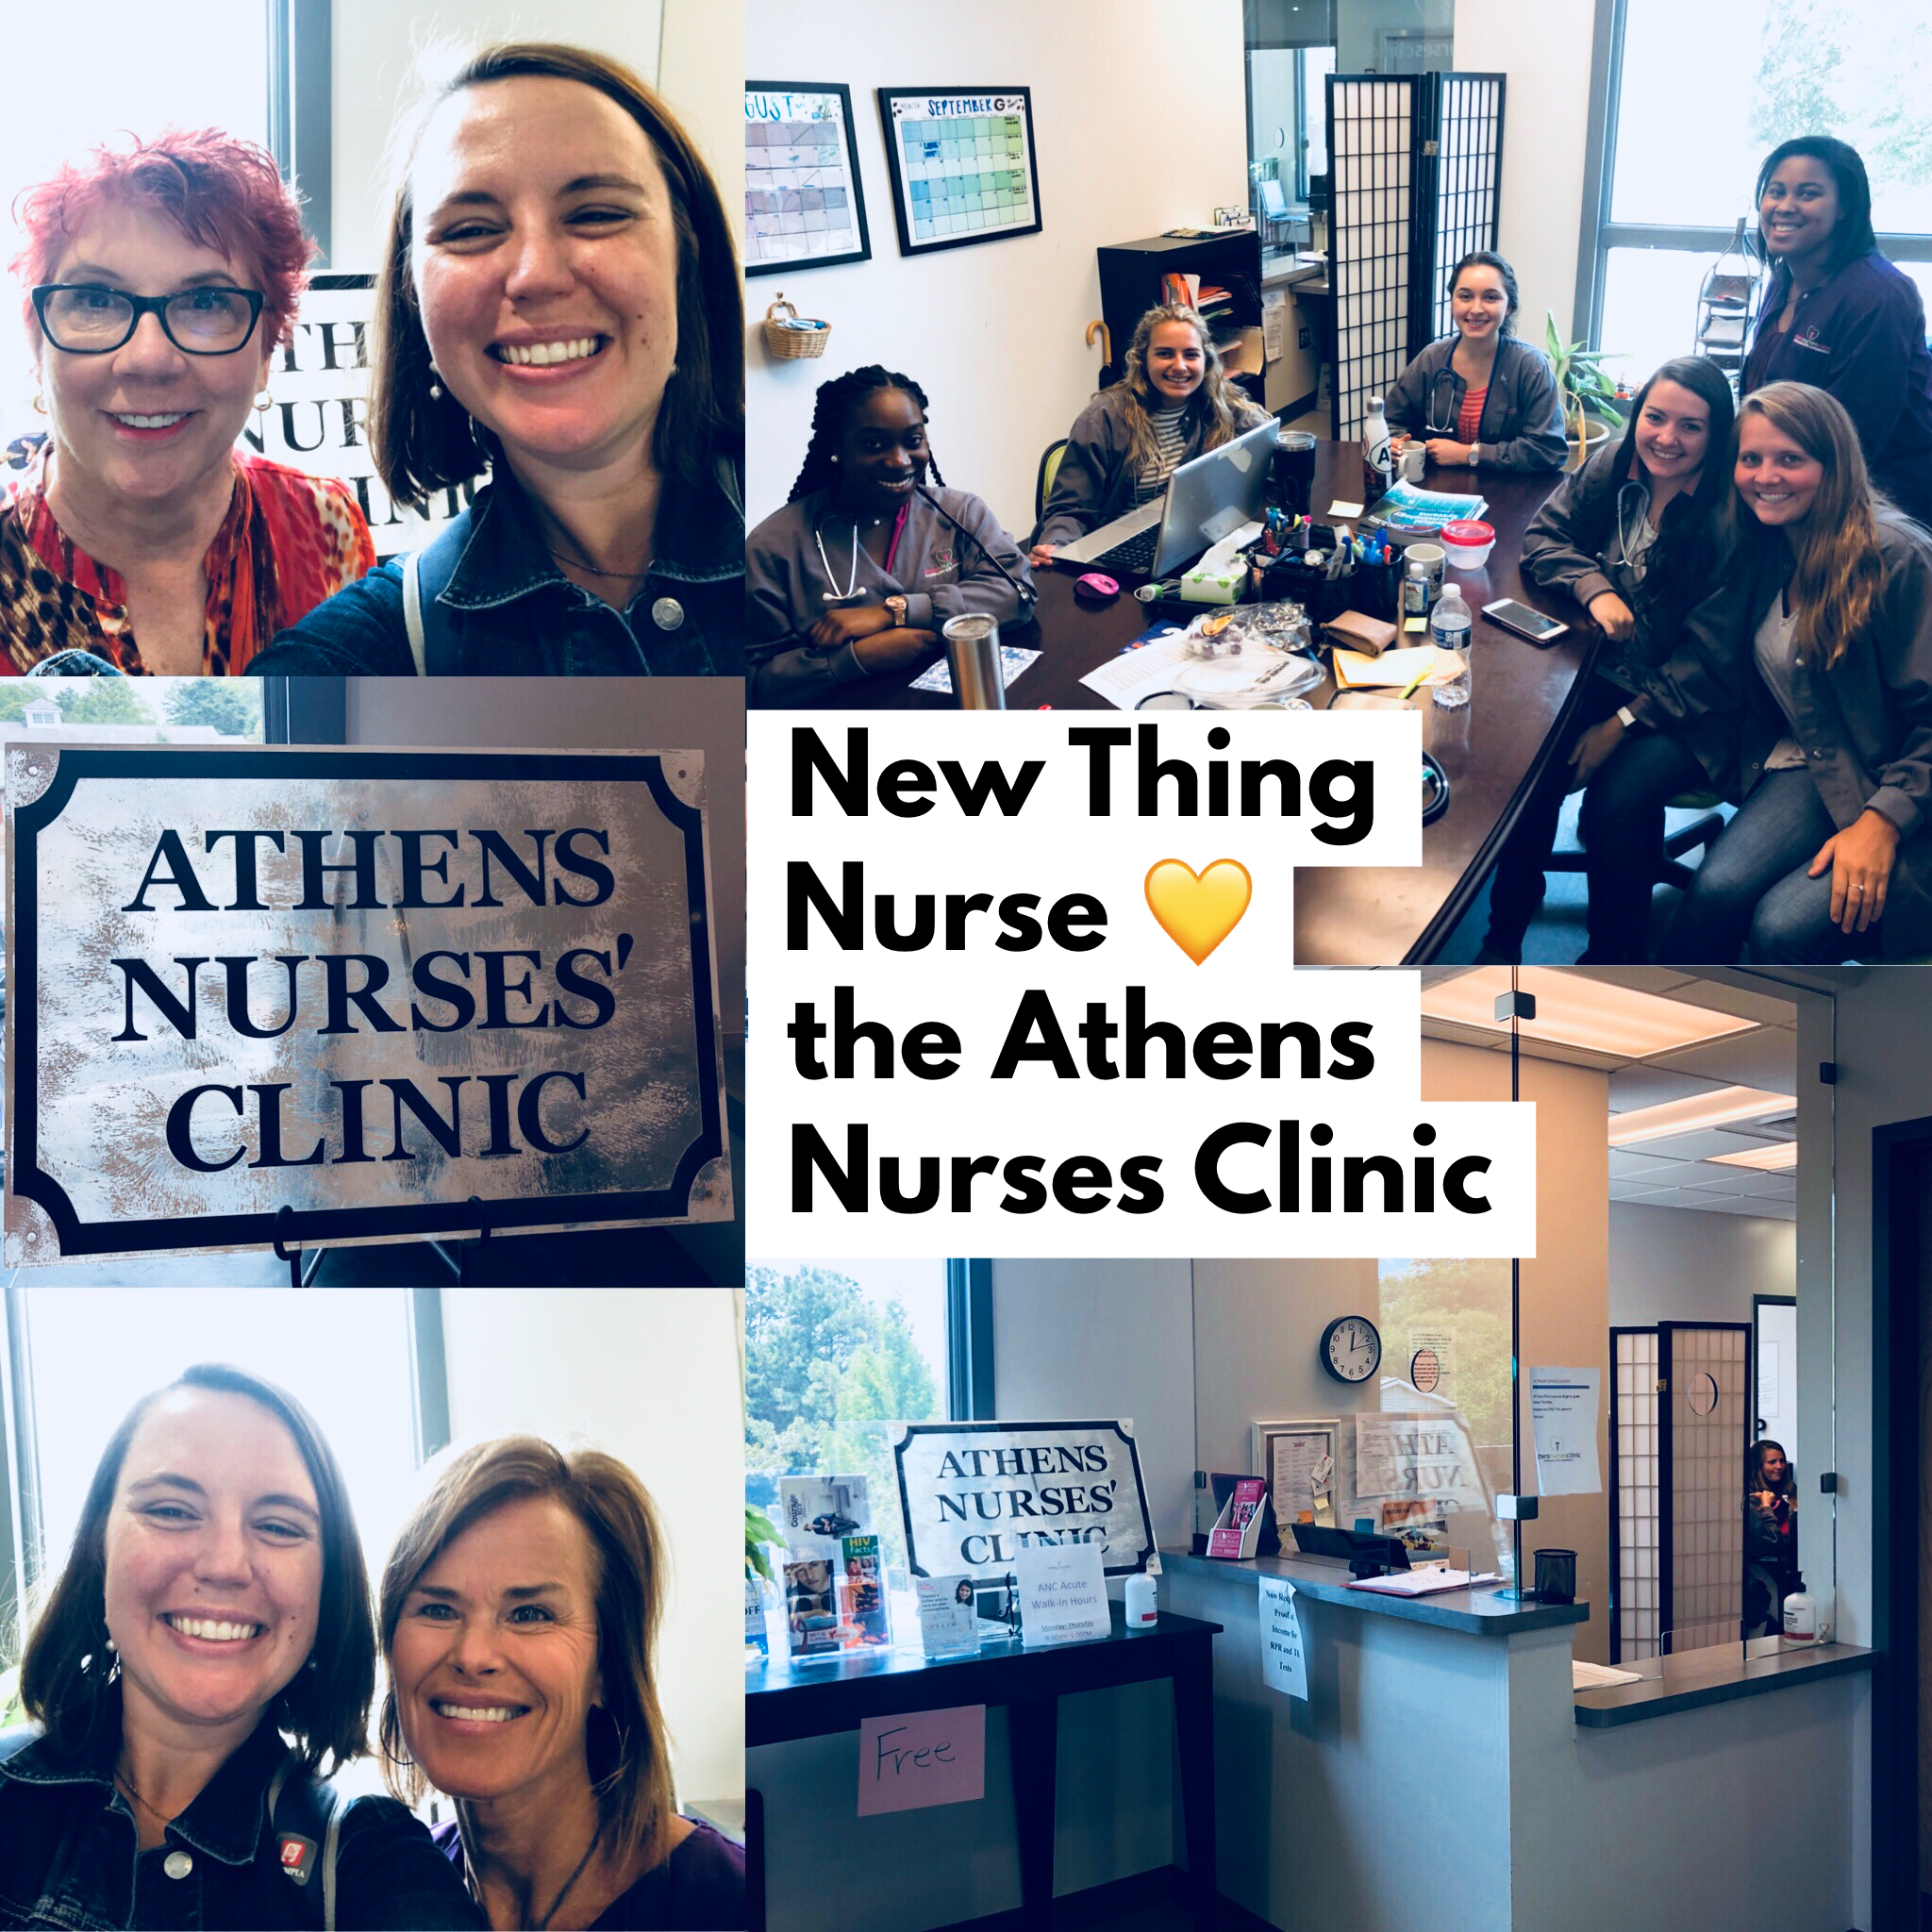 Top Left: Sarah & Paige M. Cummings, Executive Director of the Athens Nurses Clinic (ANC); Bottom Left: Sarah & Annabella Uhde, Office Administrator & Interpreter of ANC; Top Right: 2018 student interns; Bottom Right: The front desk of ANC on North Ave.